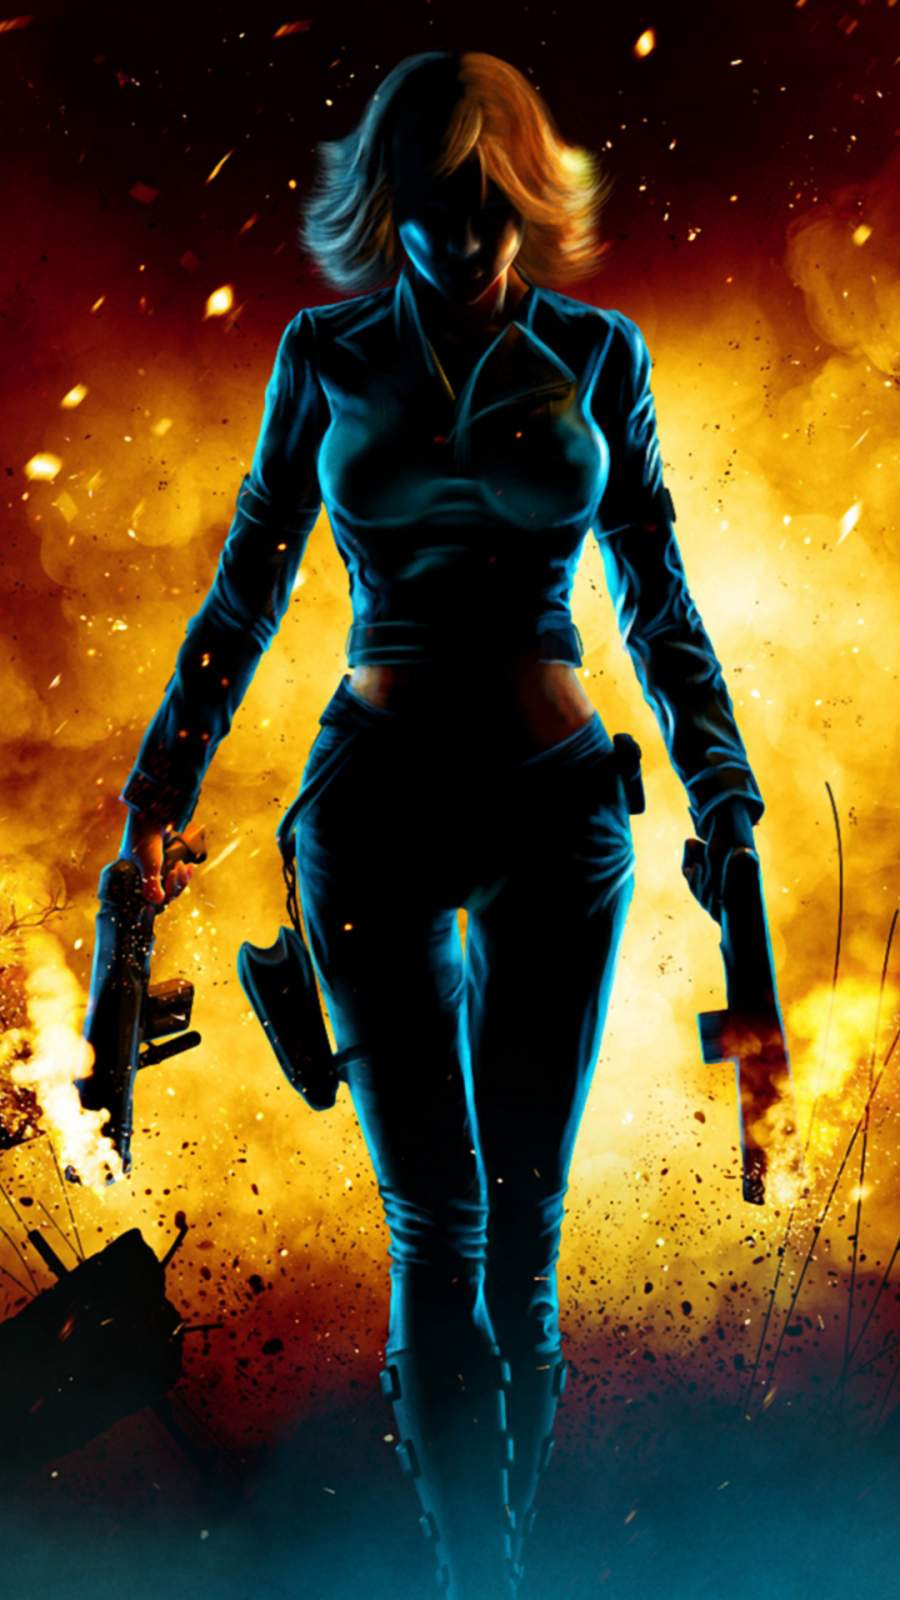 Black Widow Walking Through Fire iPhone Wallpaper